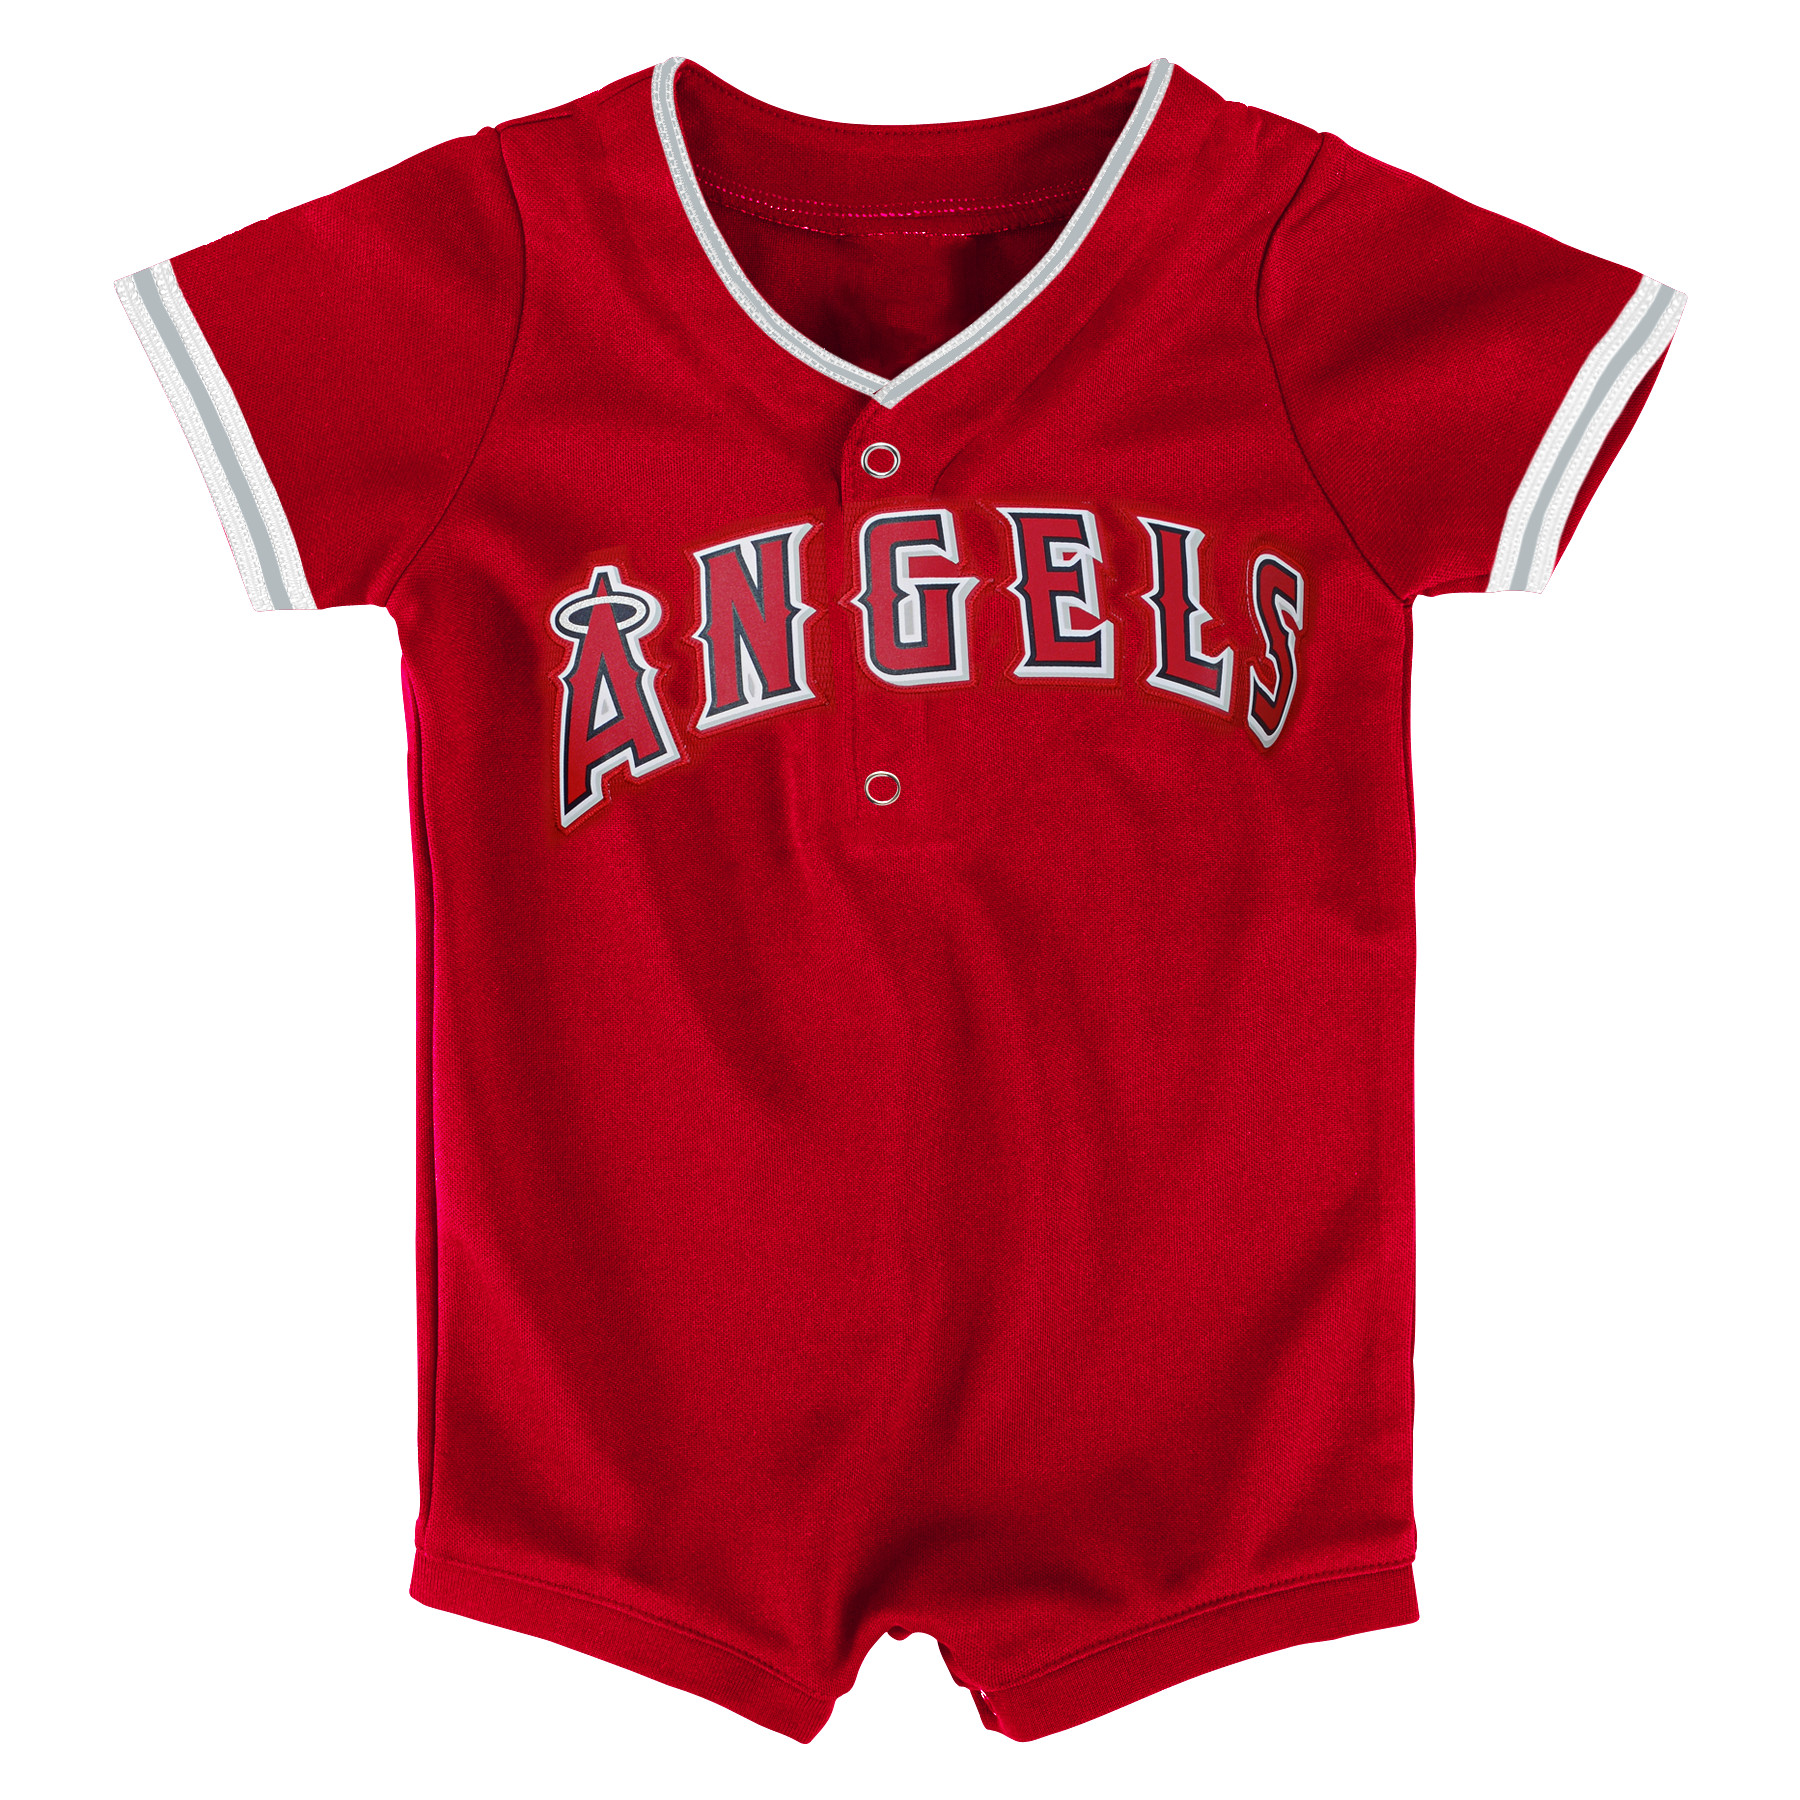 Los Angeles Angels Newborn & Infant Replica Romper - Red